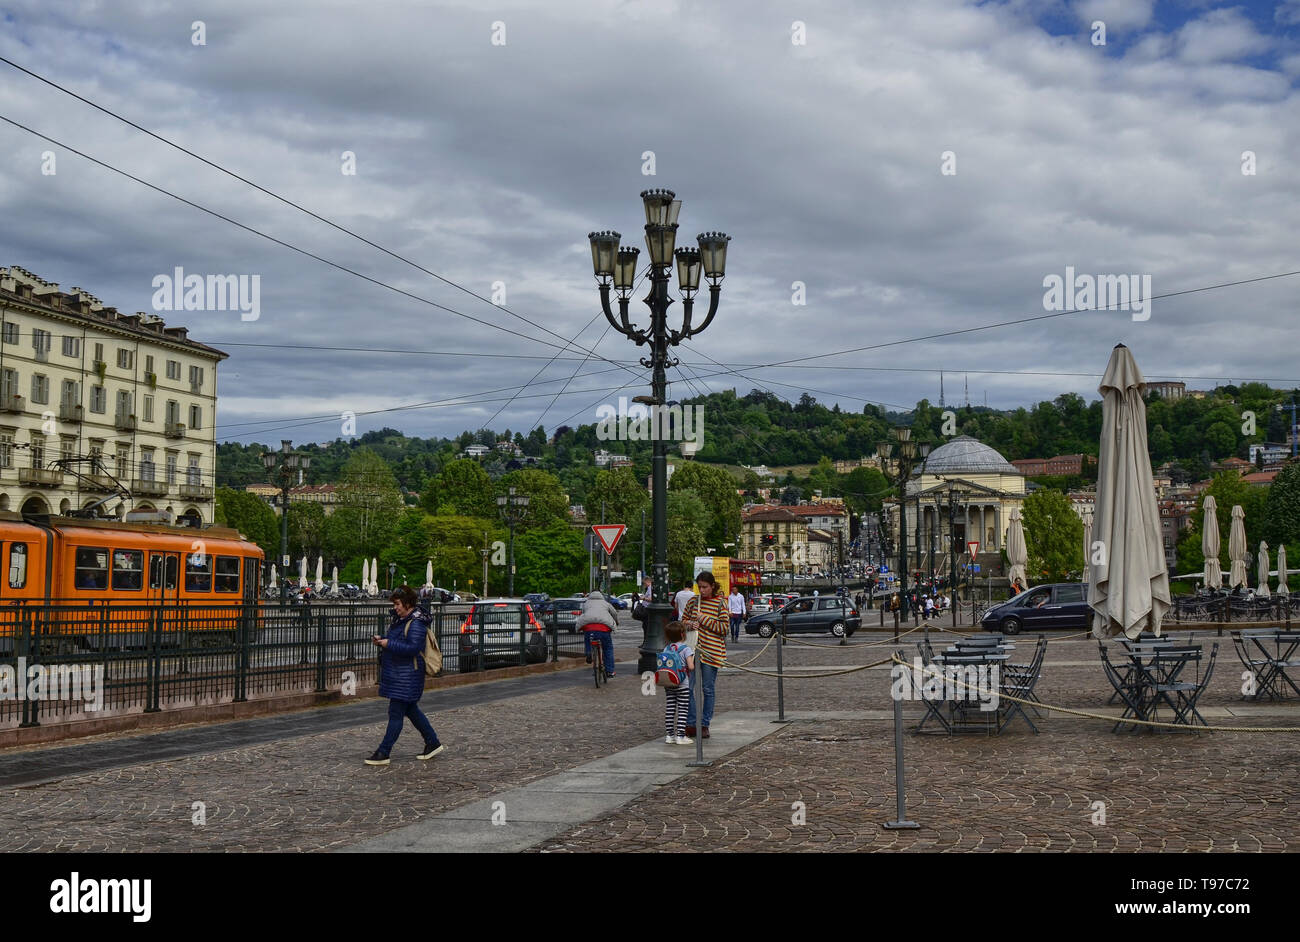 Turin, Piedmont, Italy. May 2019. Piazza vittorio, one of the main squares of the city. It is a meeting place for both day and night. In the backgroun - Stock Image